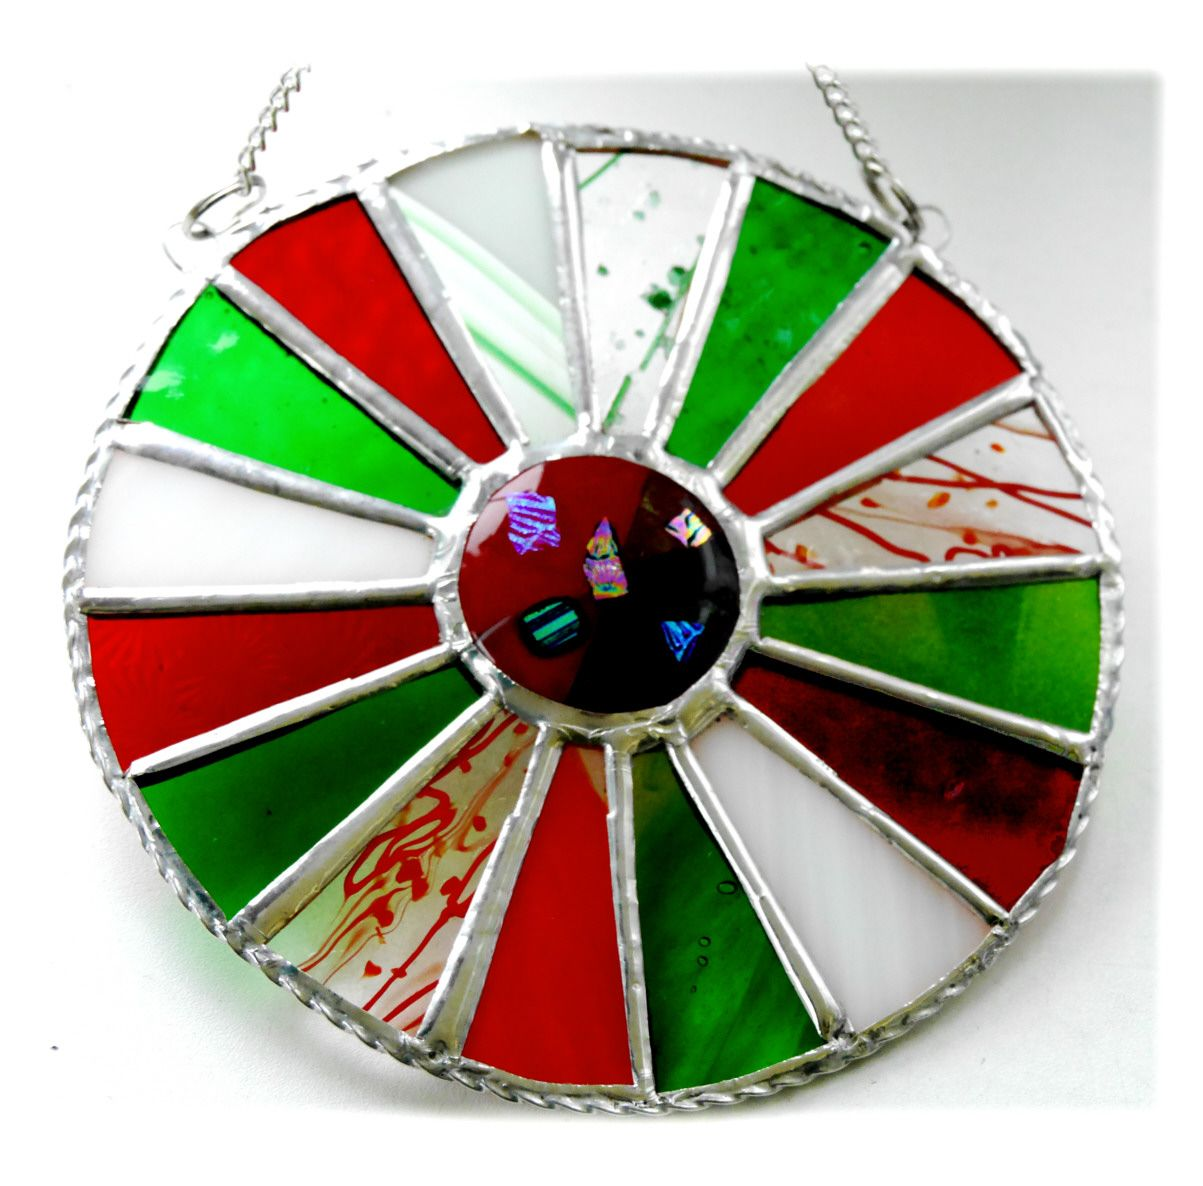 Festive Colour Wheel 002 #1910 FREE 22.50